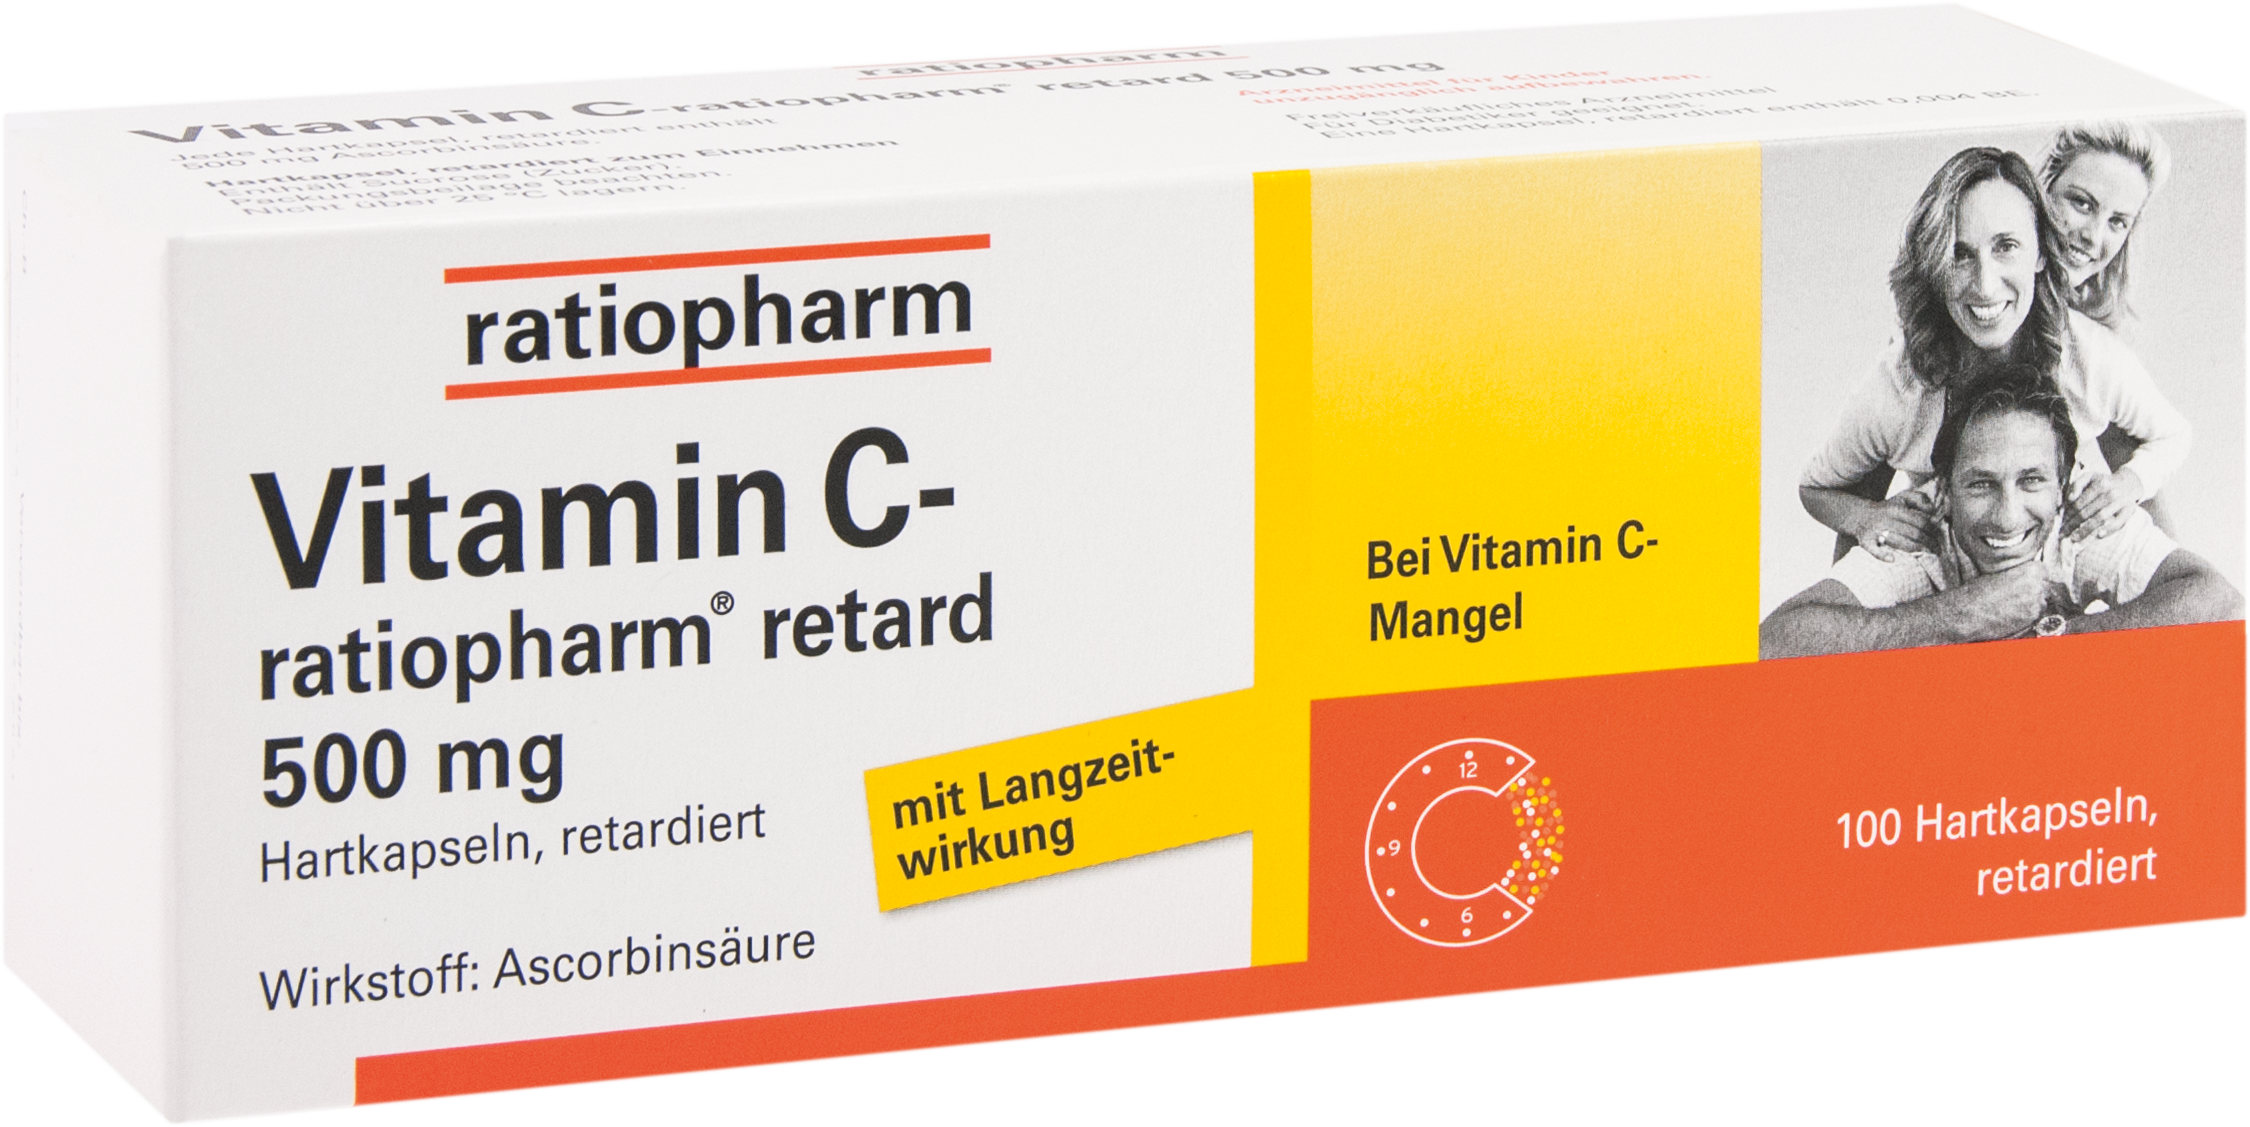 Vitamin C-ratiopharm retard 500 mg